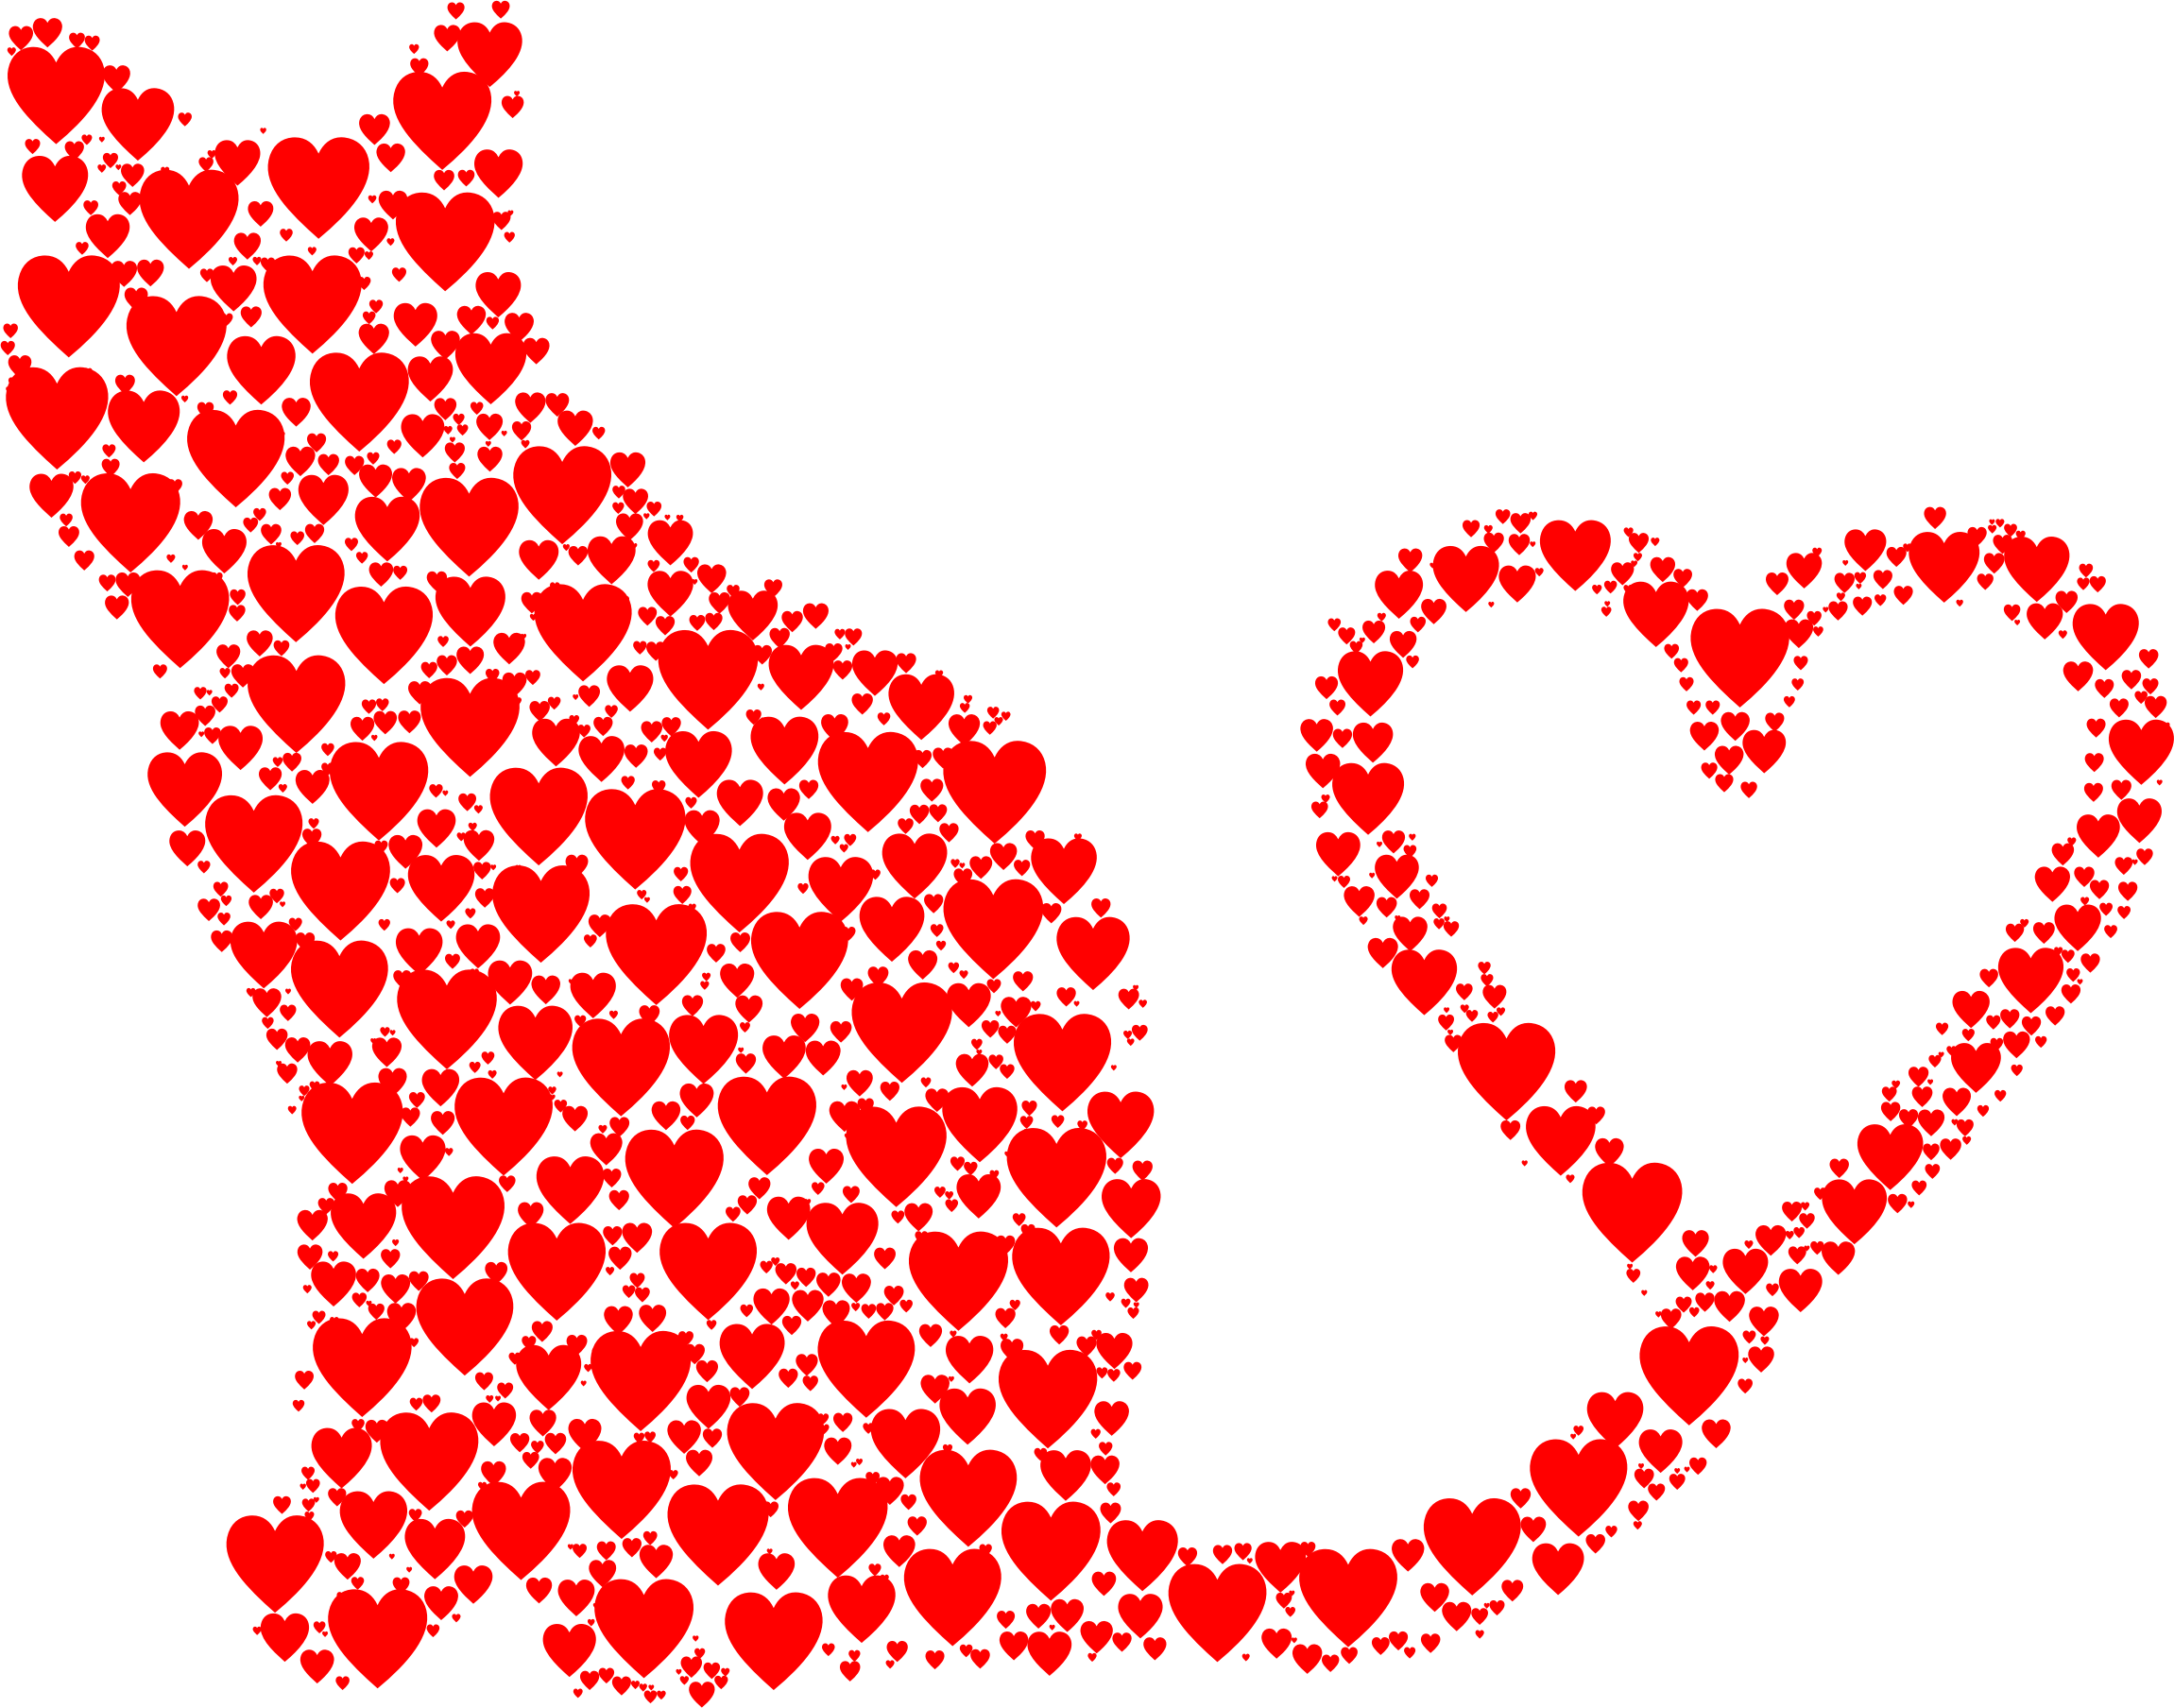 Feeding the cat clipart vector library Clipart - Cat 2 Silhouette Heart Tail Hearts vector library